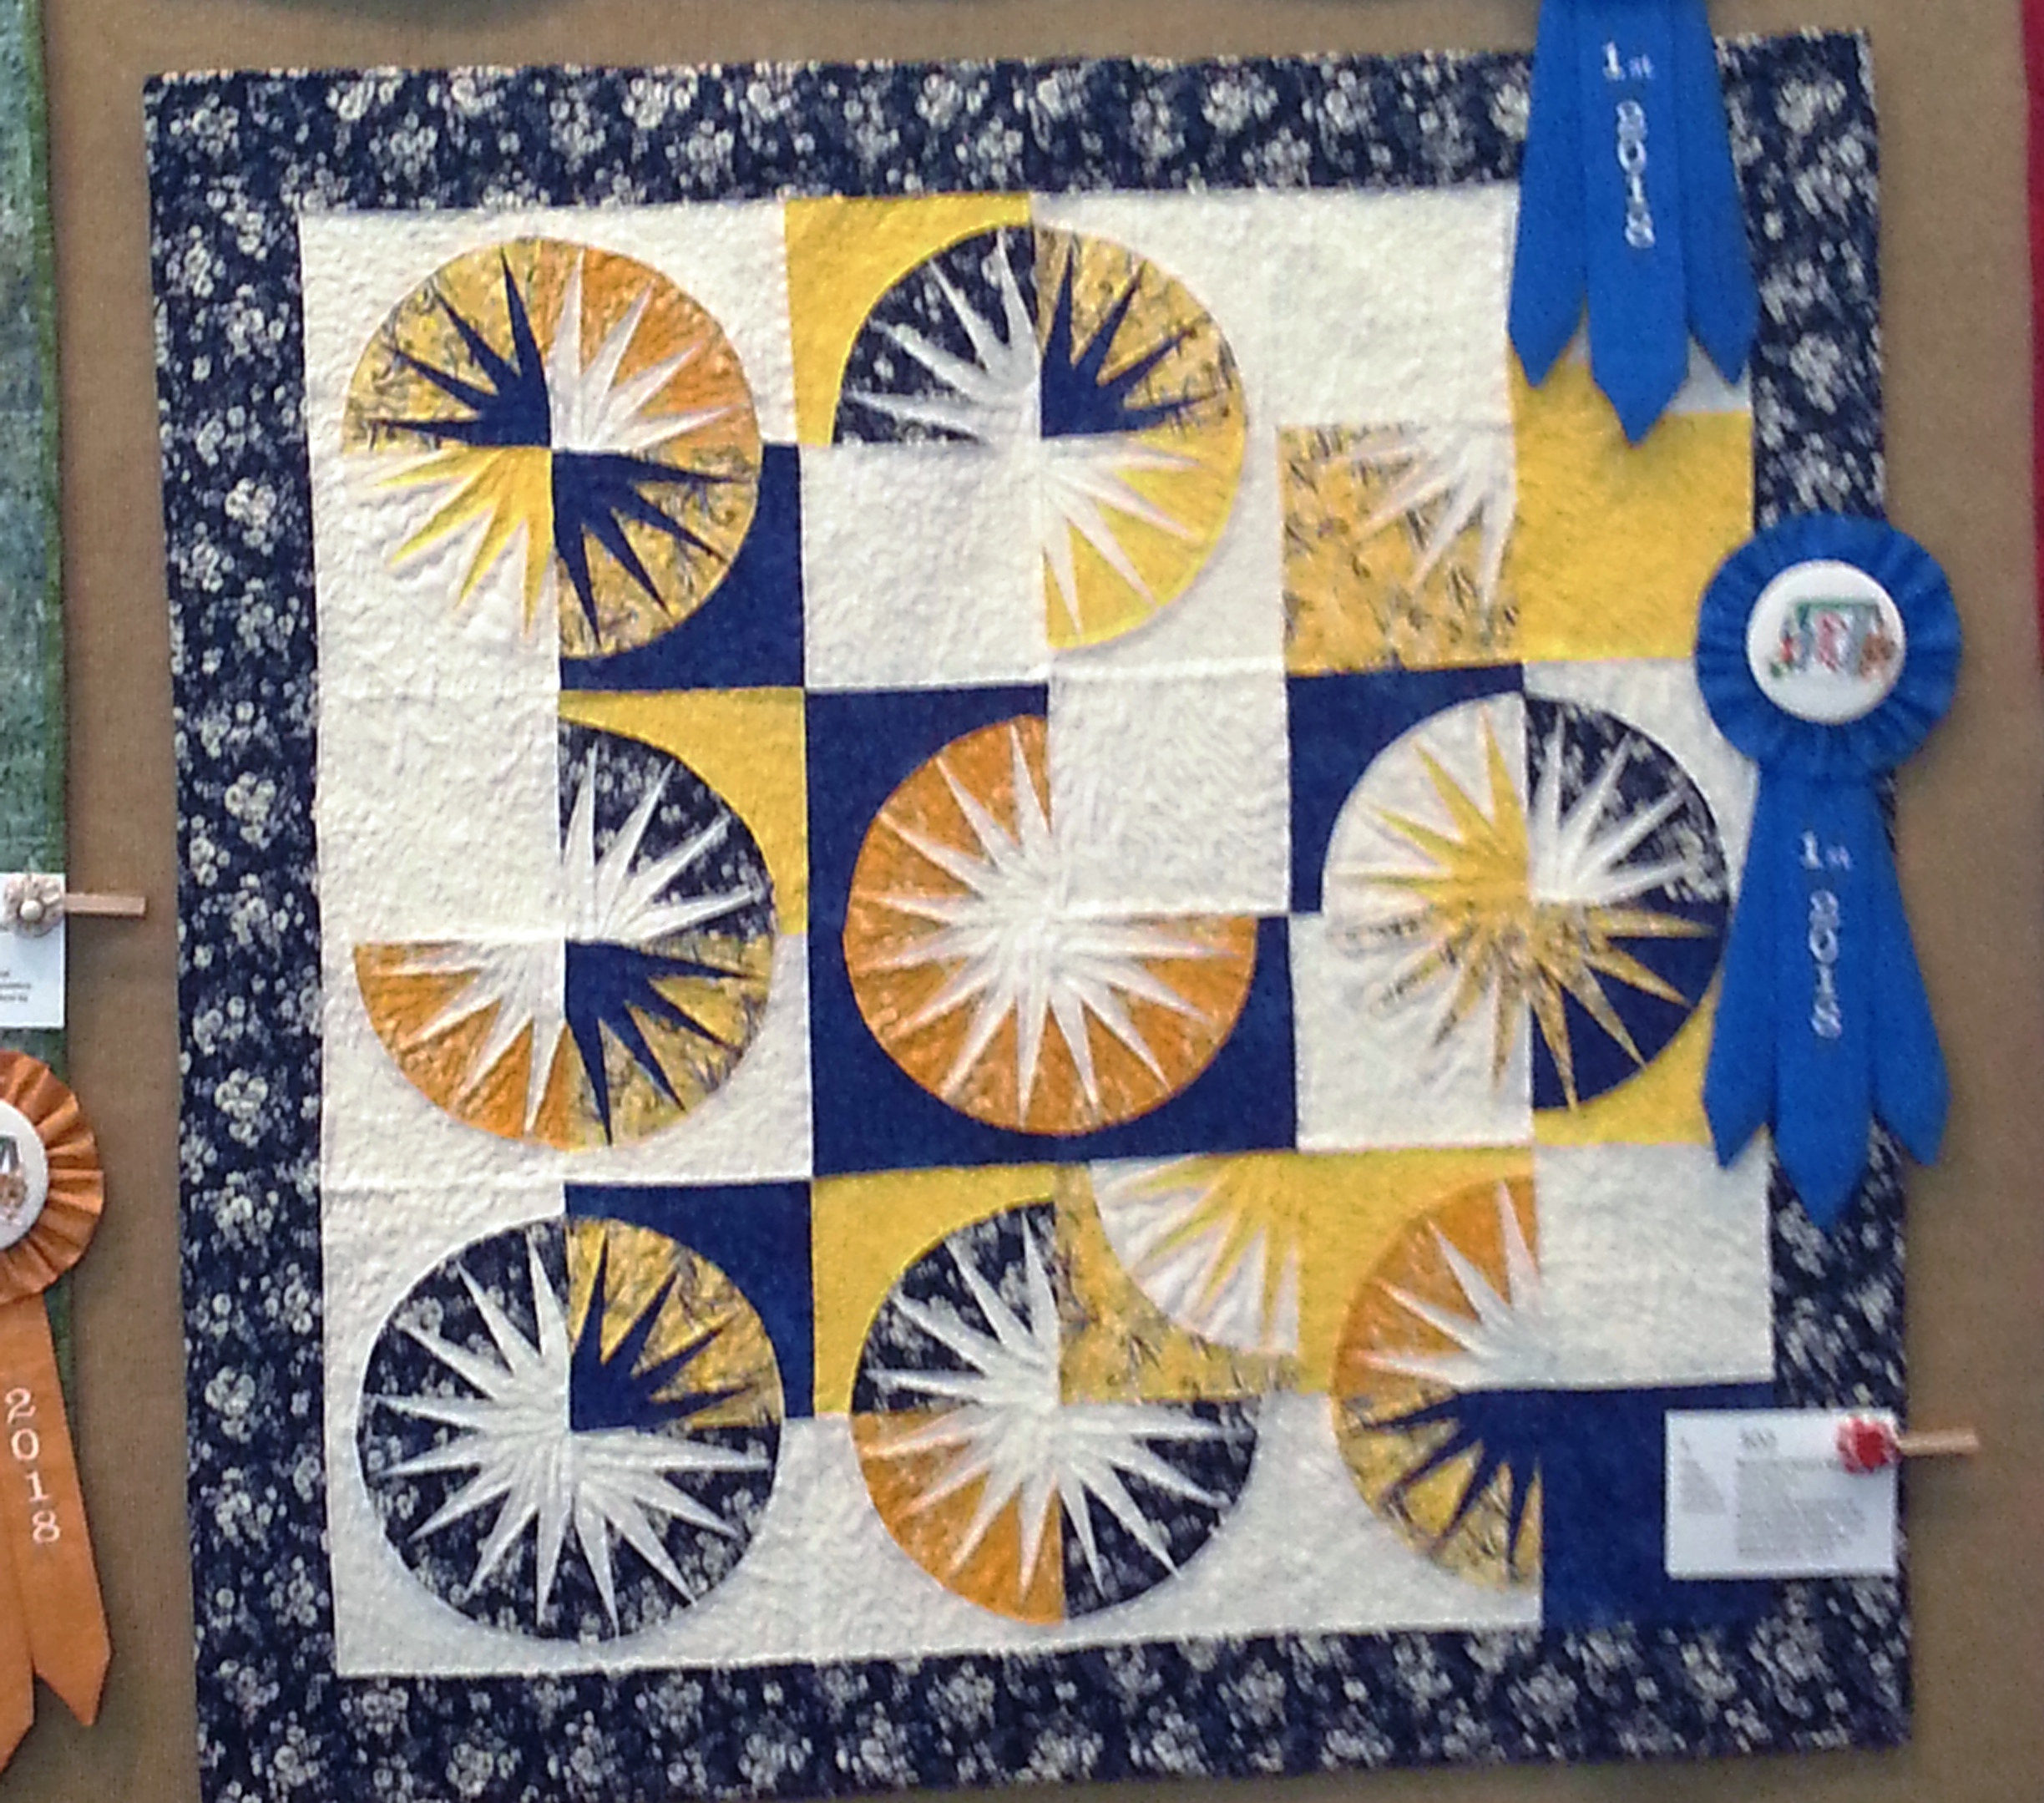 1st Place - Small Pieced